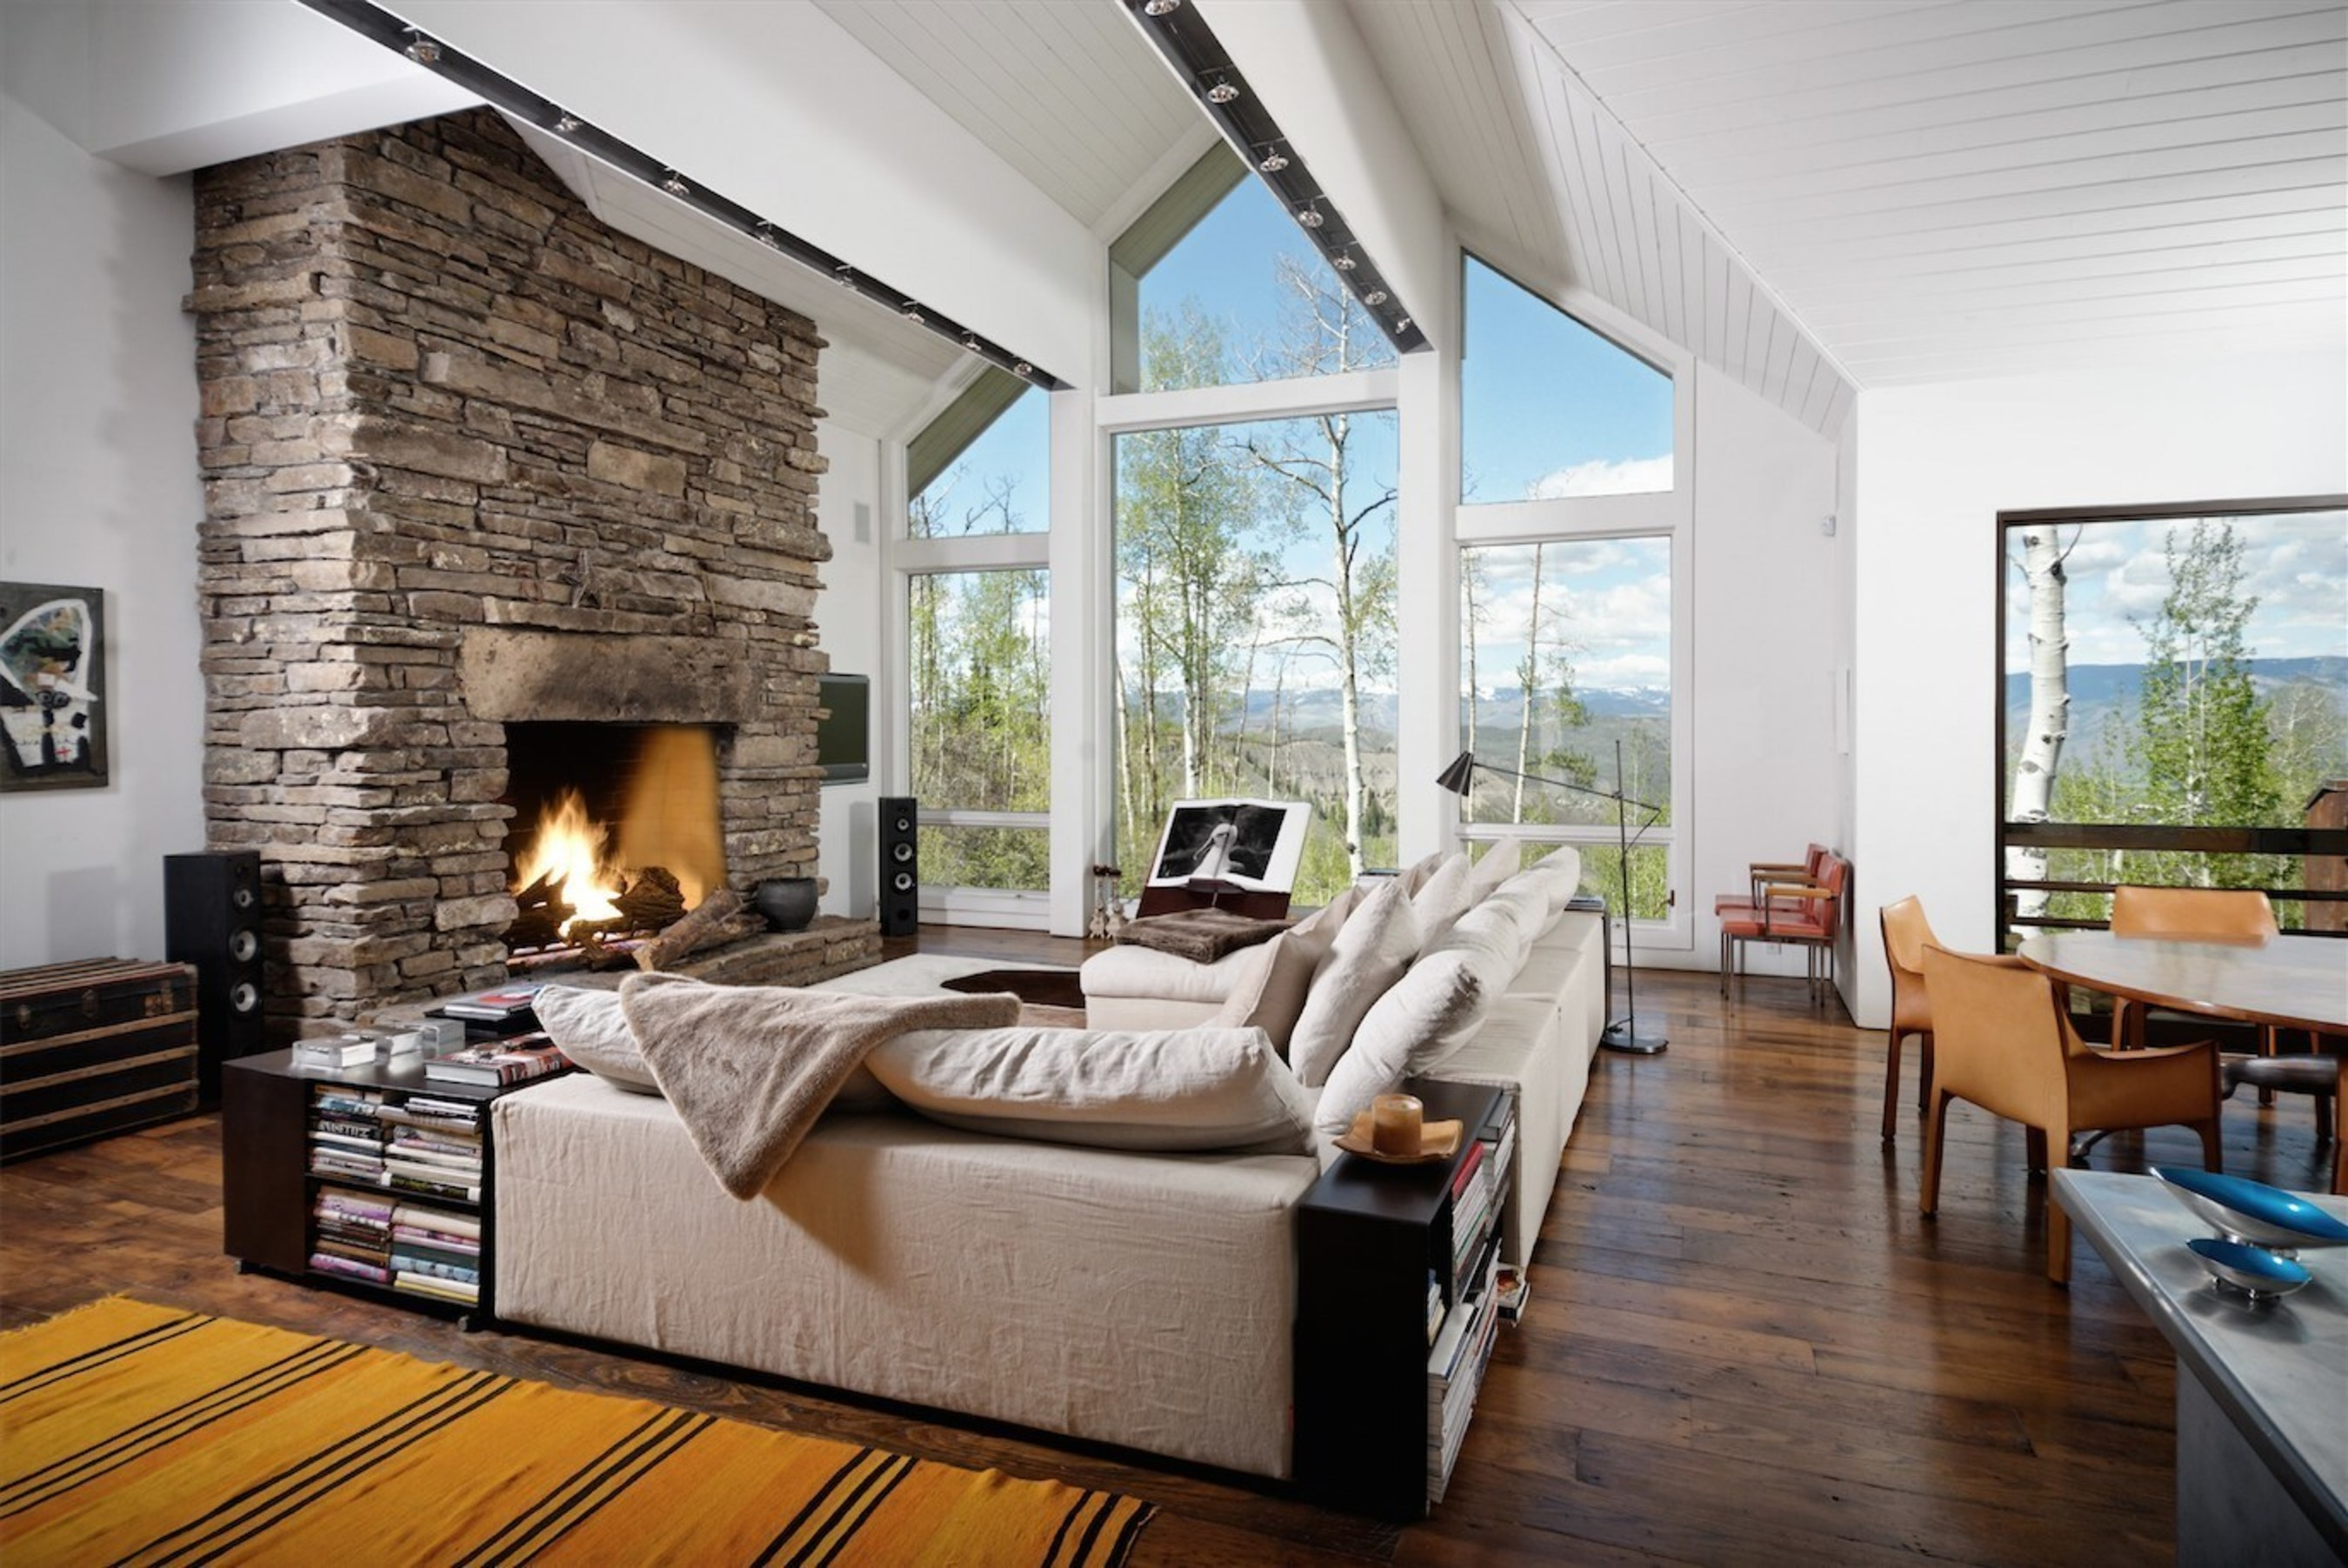 Concierge Auctions Closes On Its Sale Of A Luxury Ski Chalet In Aspen/Snowmass, Colorado And